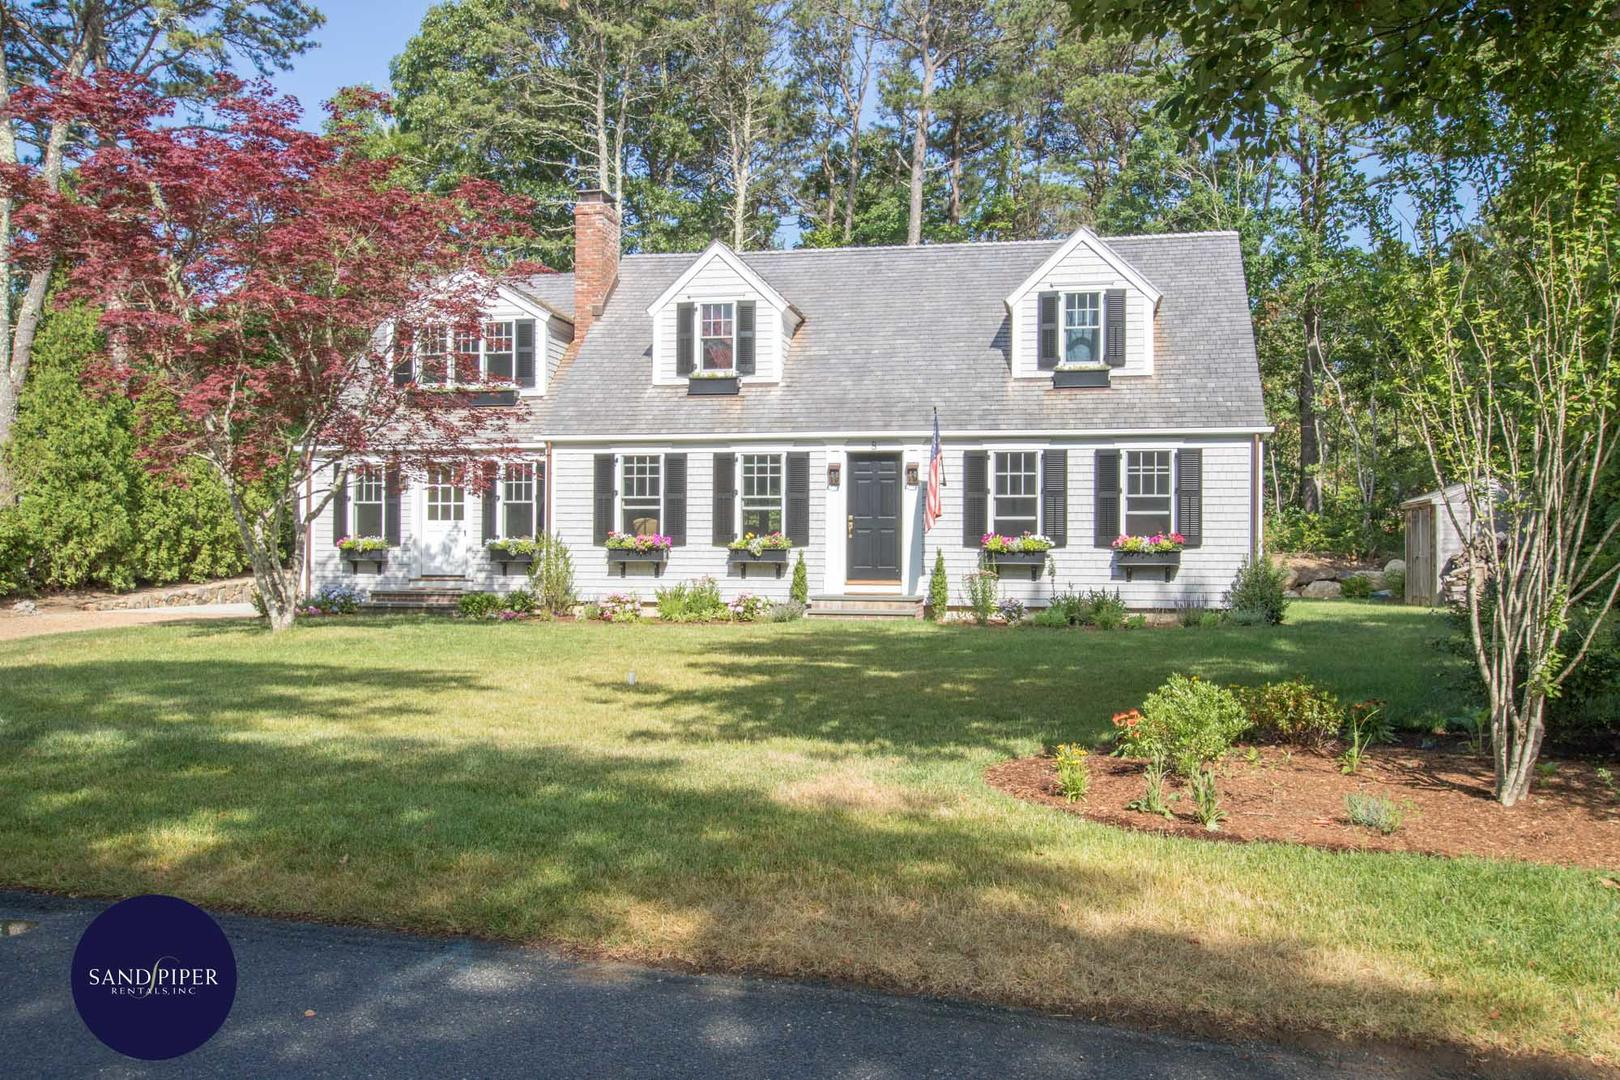 Oaks Bluffs 4 bedroom vacation rental close to the beach in Marthas Vineyard